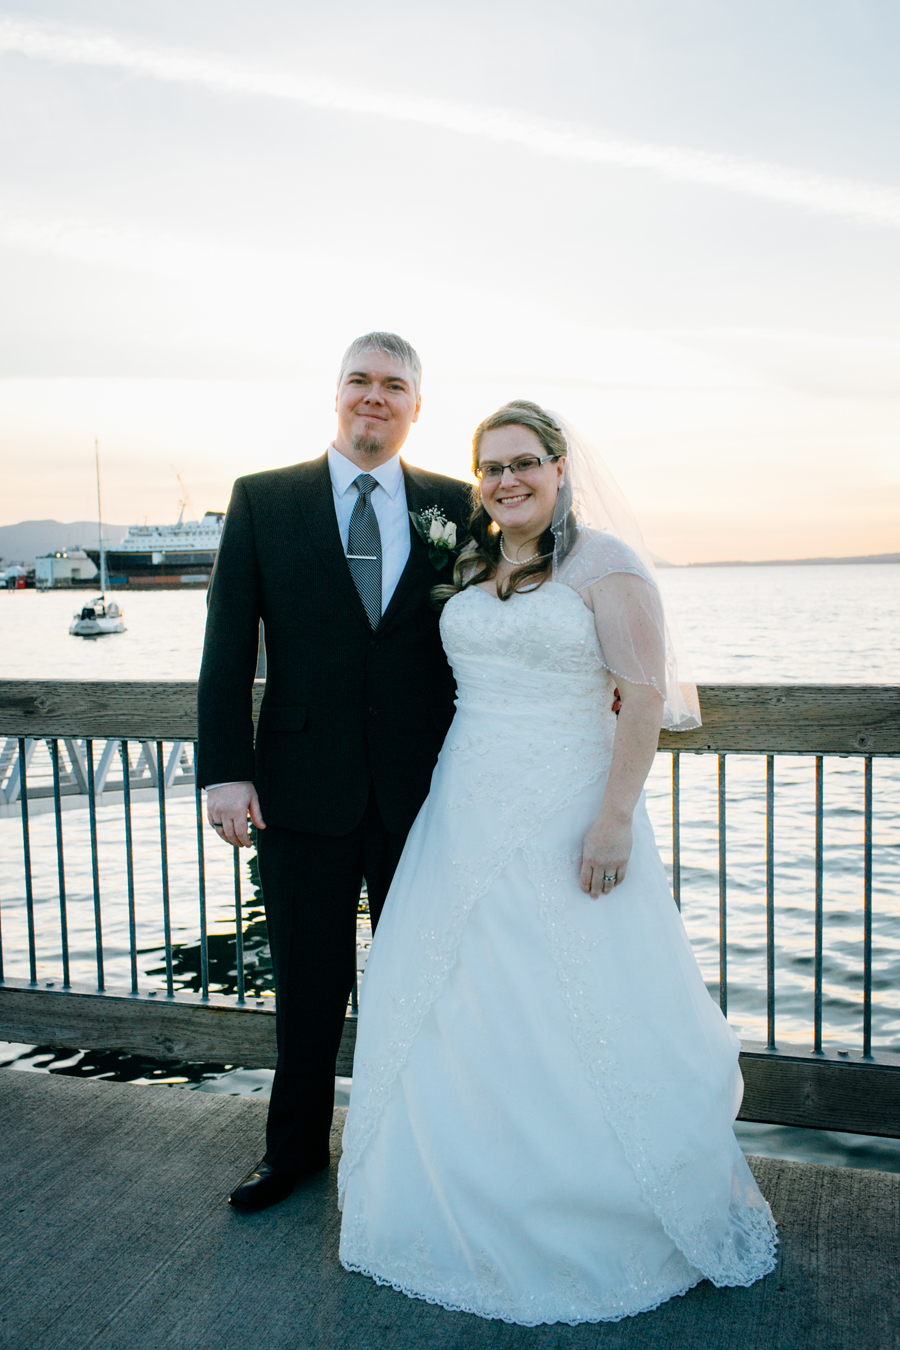 040-bellingham-wedding-photographer-chrysalis-inn-and-spa-elopement-katheryn-moran-photography.jpg